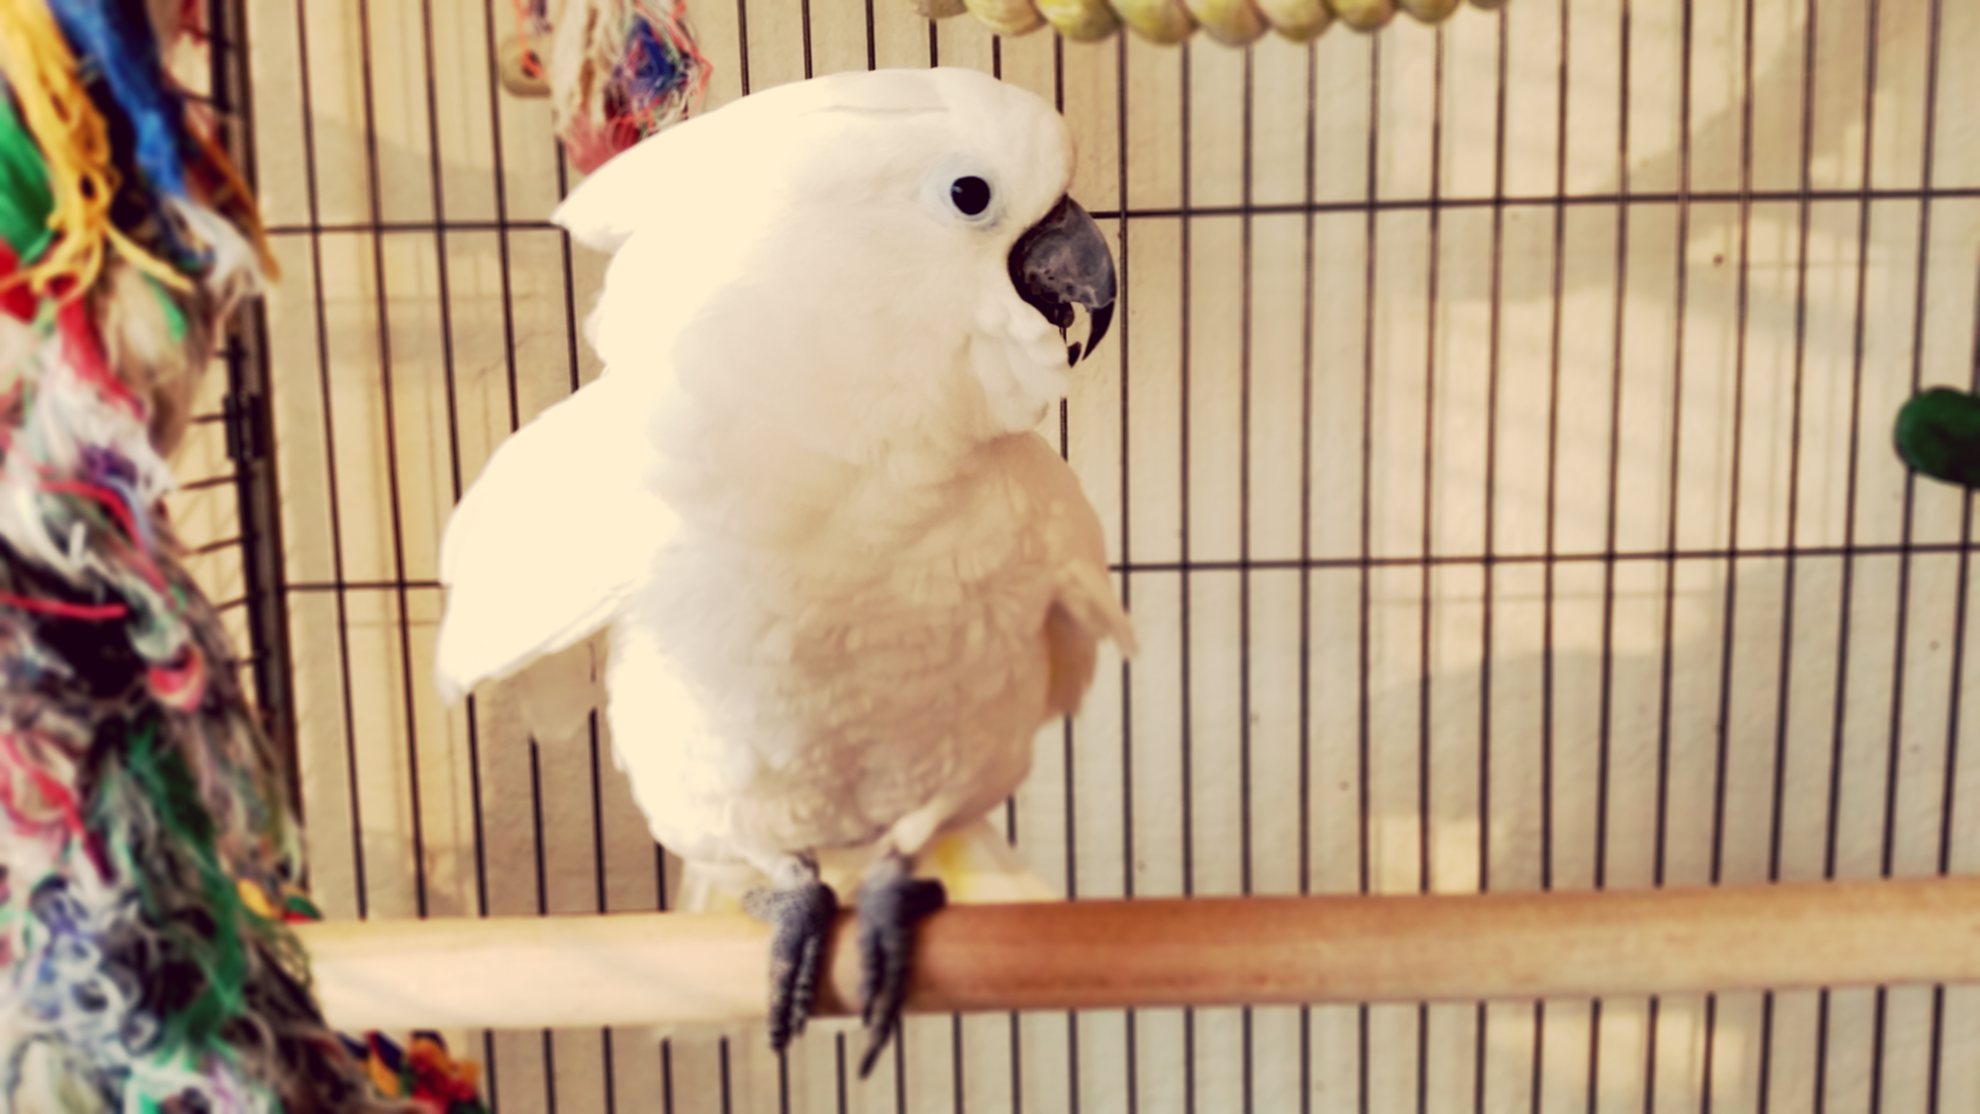 Sydney the Cockatoo